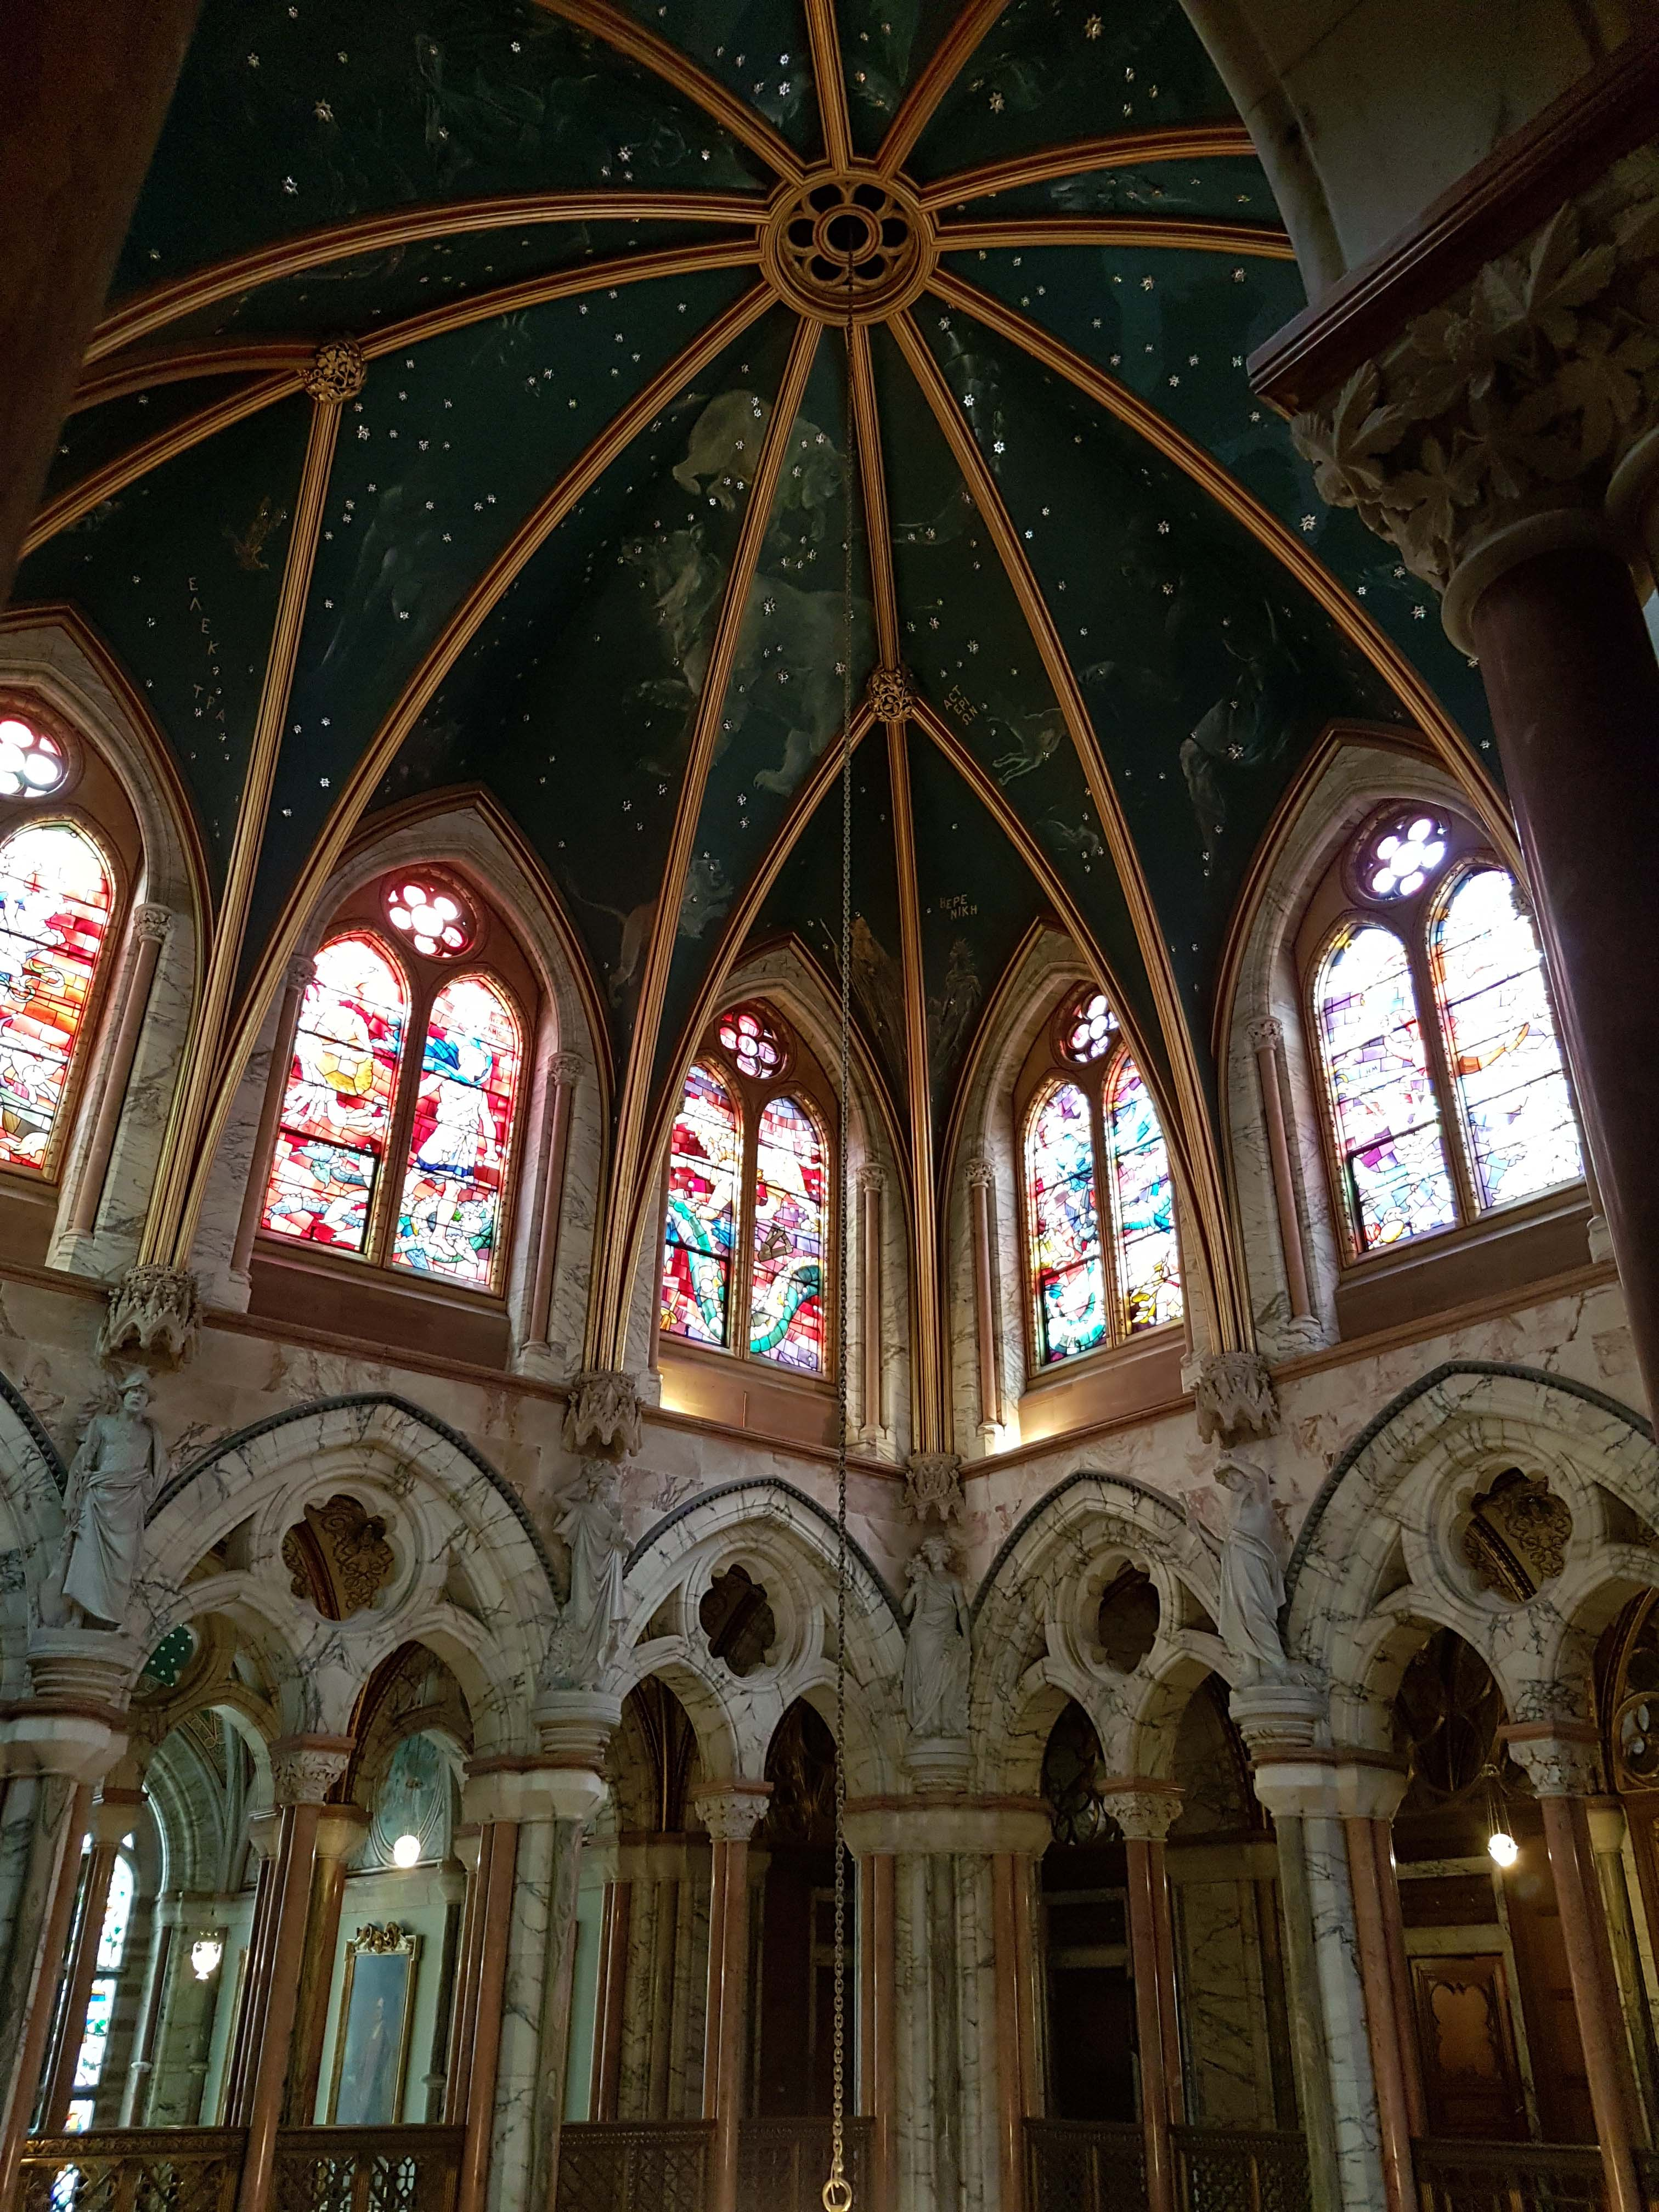 Mount Stuart Archives hold the original drawings for the stained glass windows depicting the signs of the zodiac.